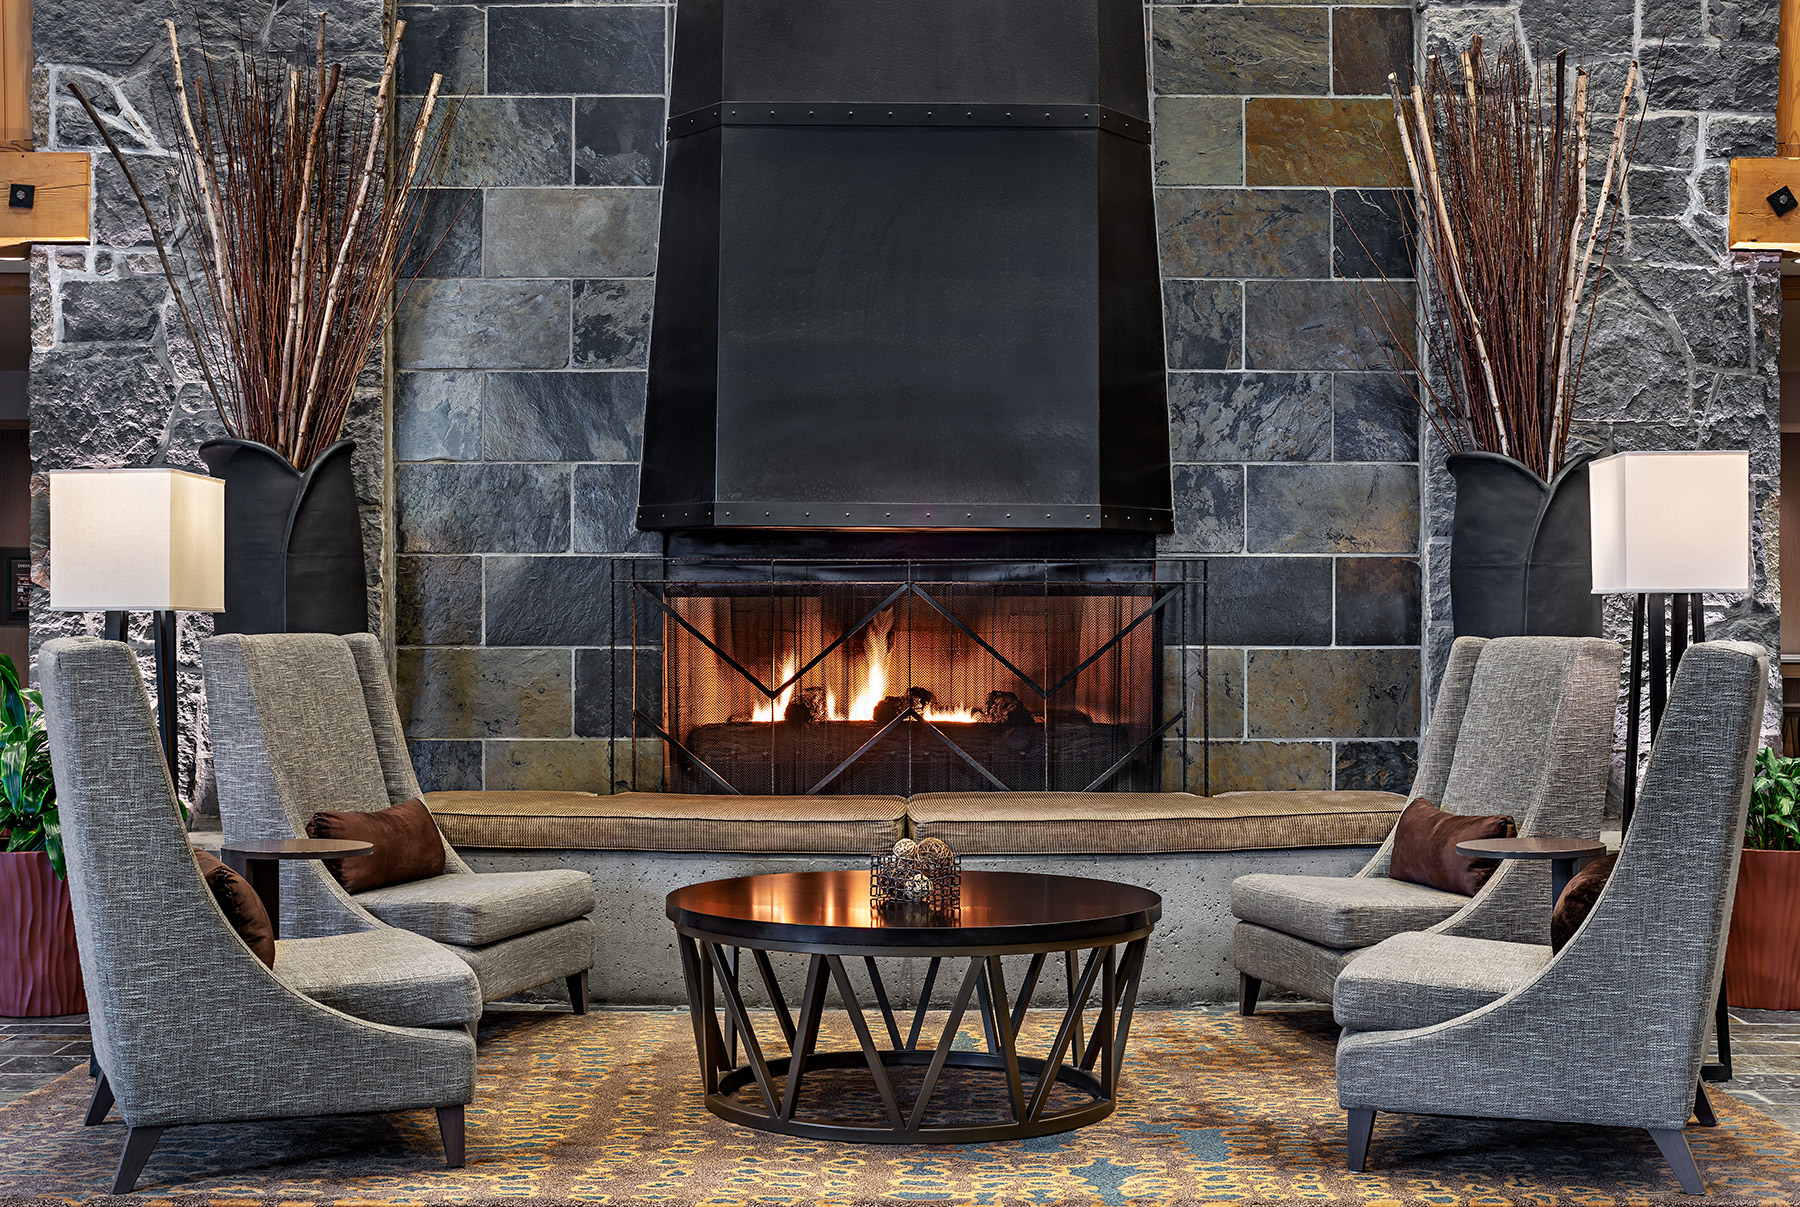 sm-003-R_Lobby_Fireplace_Westin_Whistler